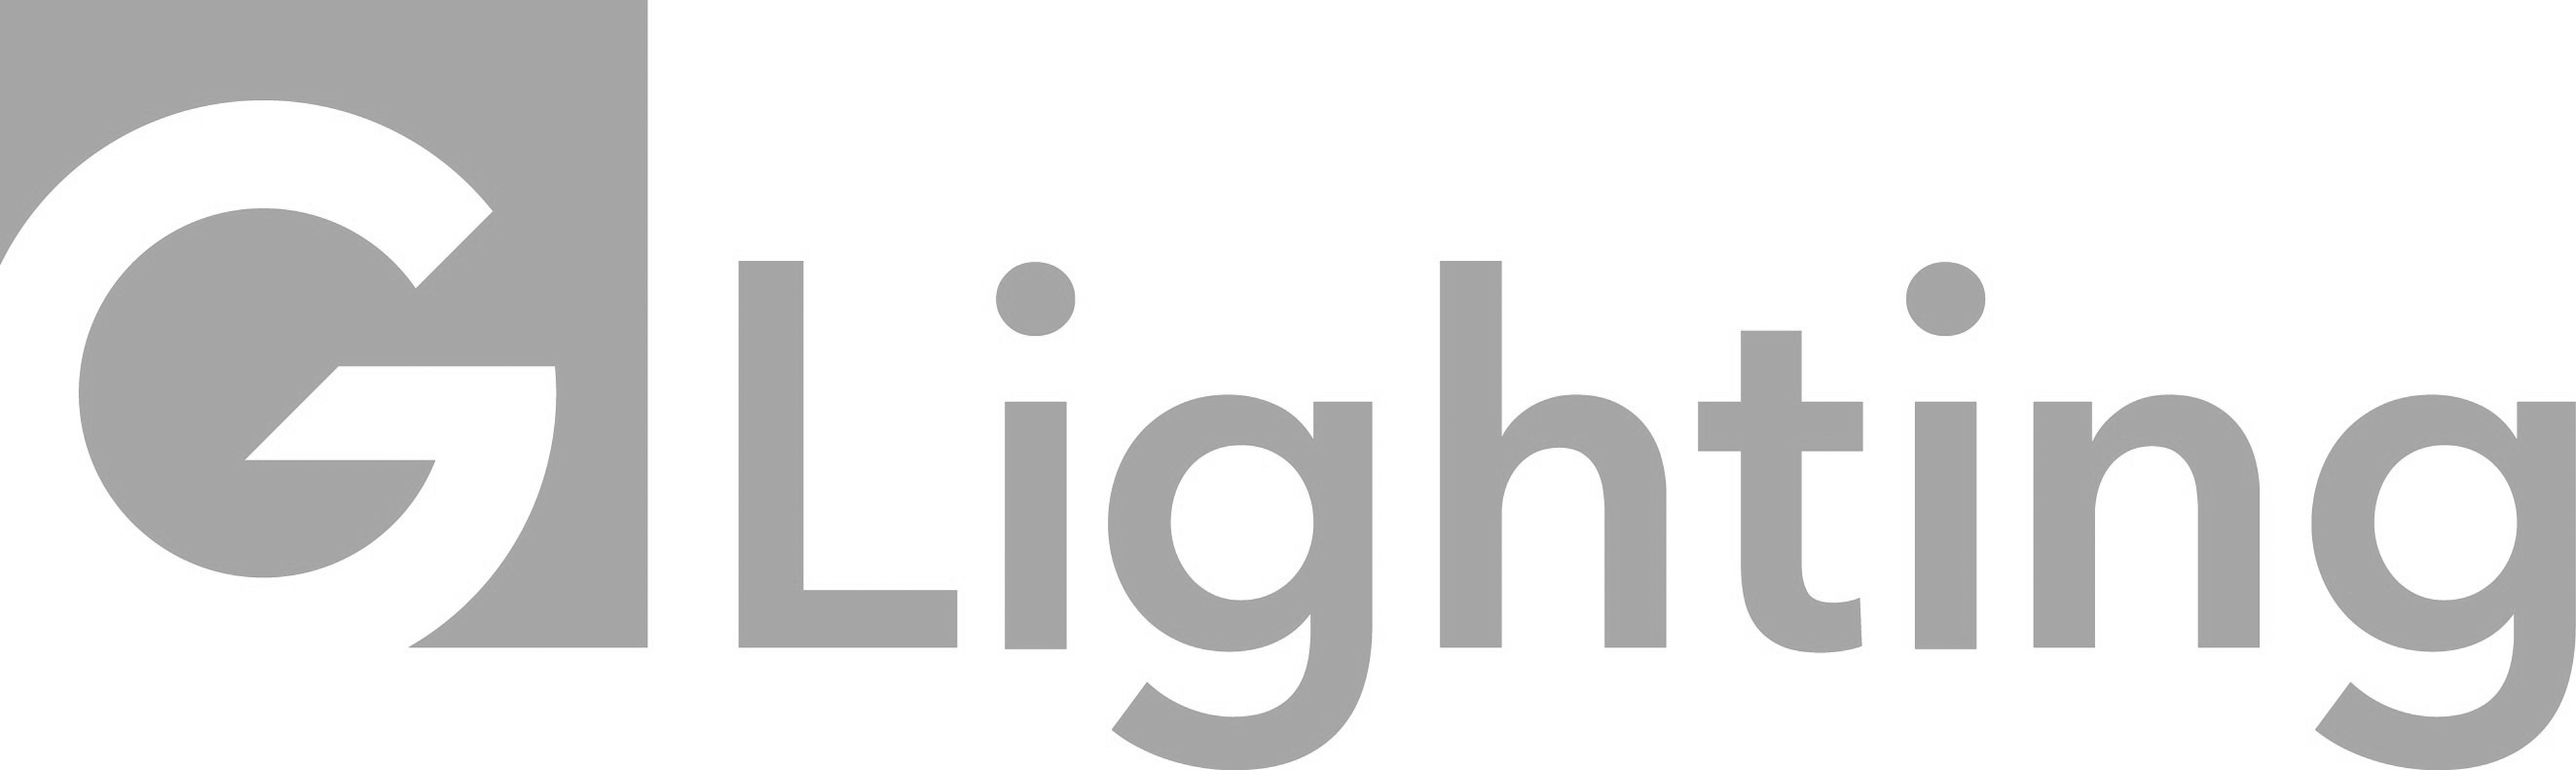 New GLightingLogo